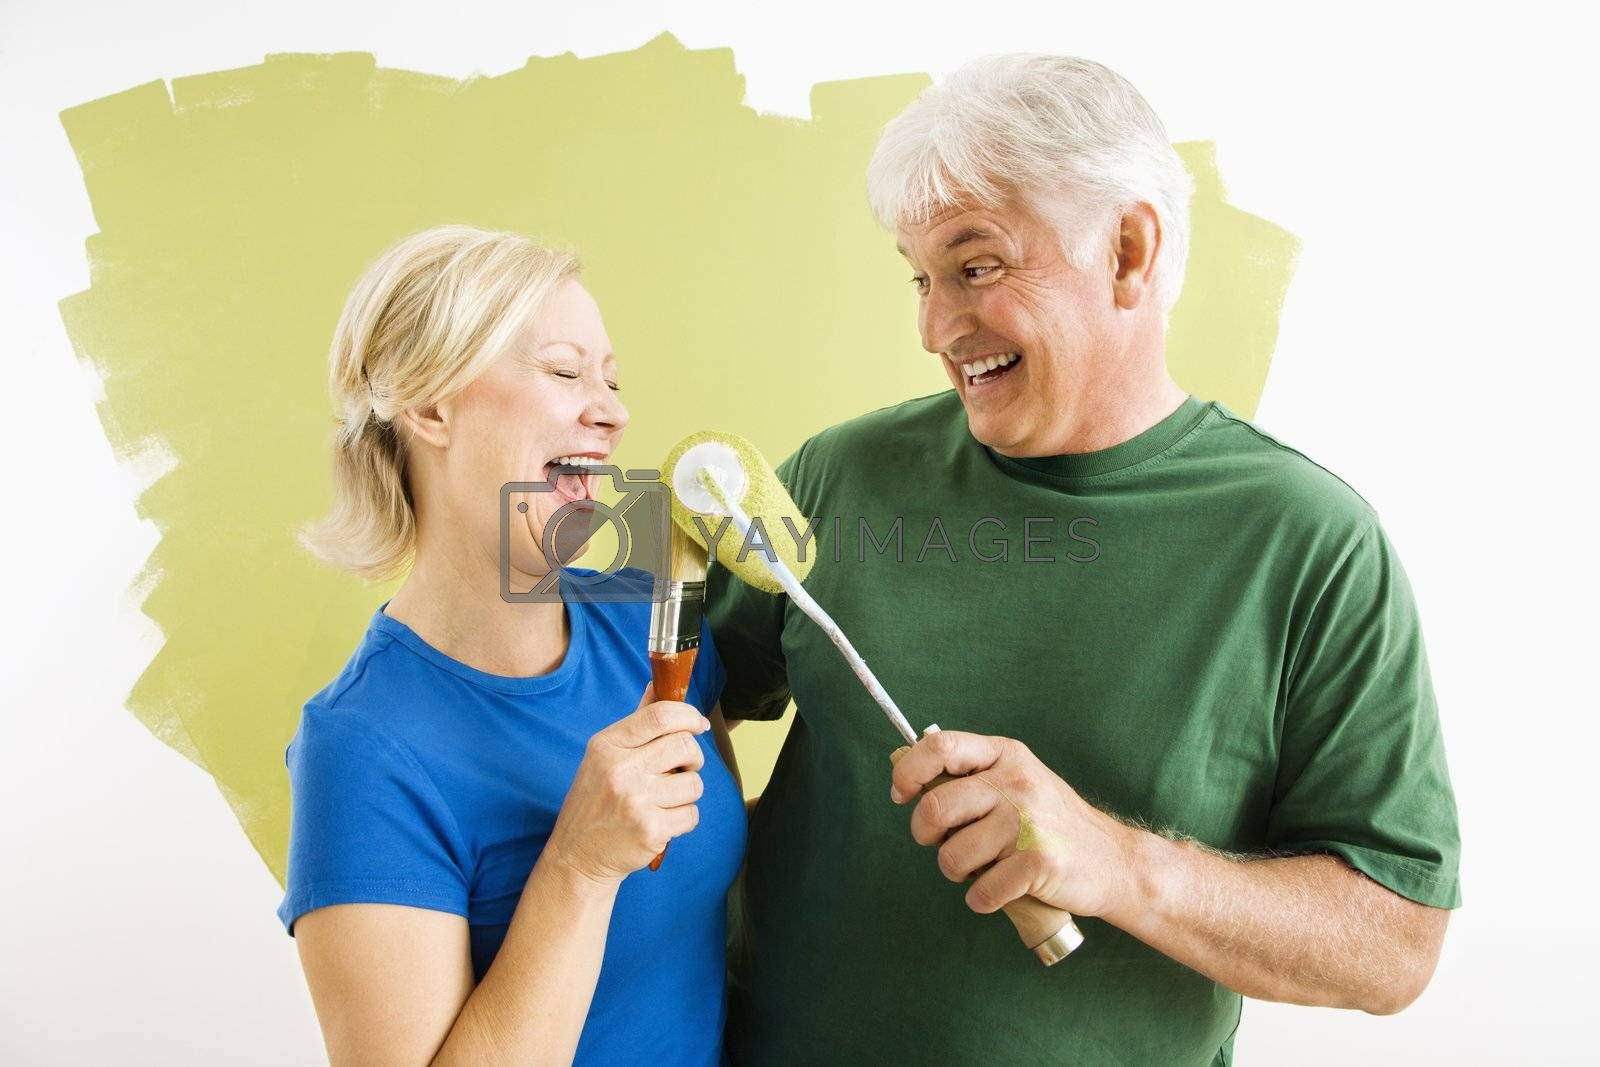 Middle-aged couple painting wall green playing with paint utensils.